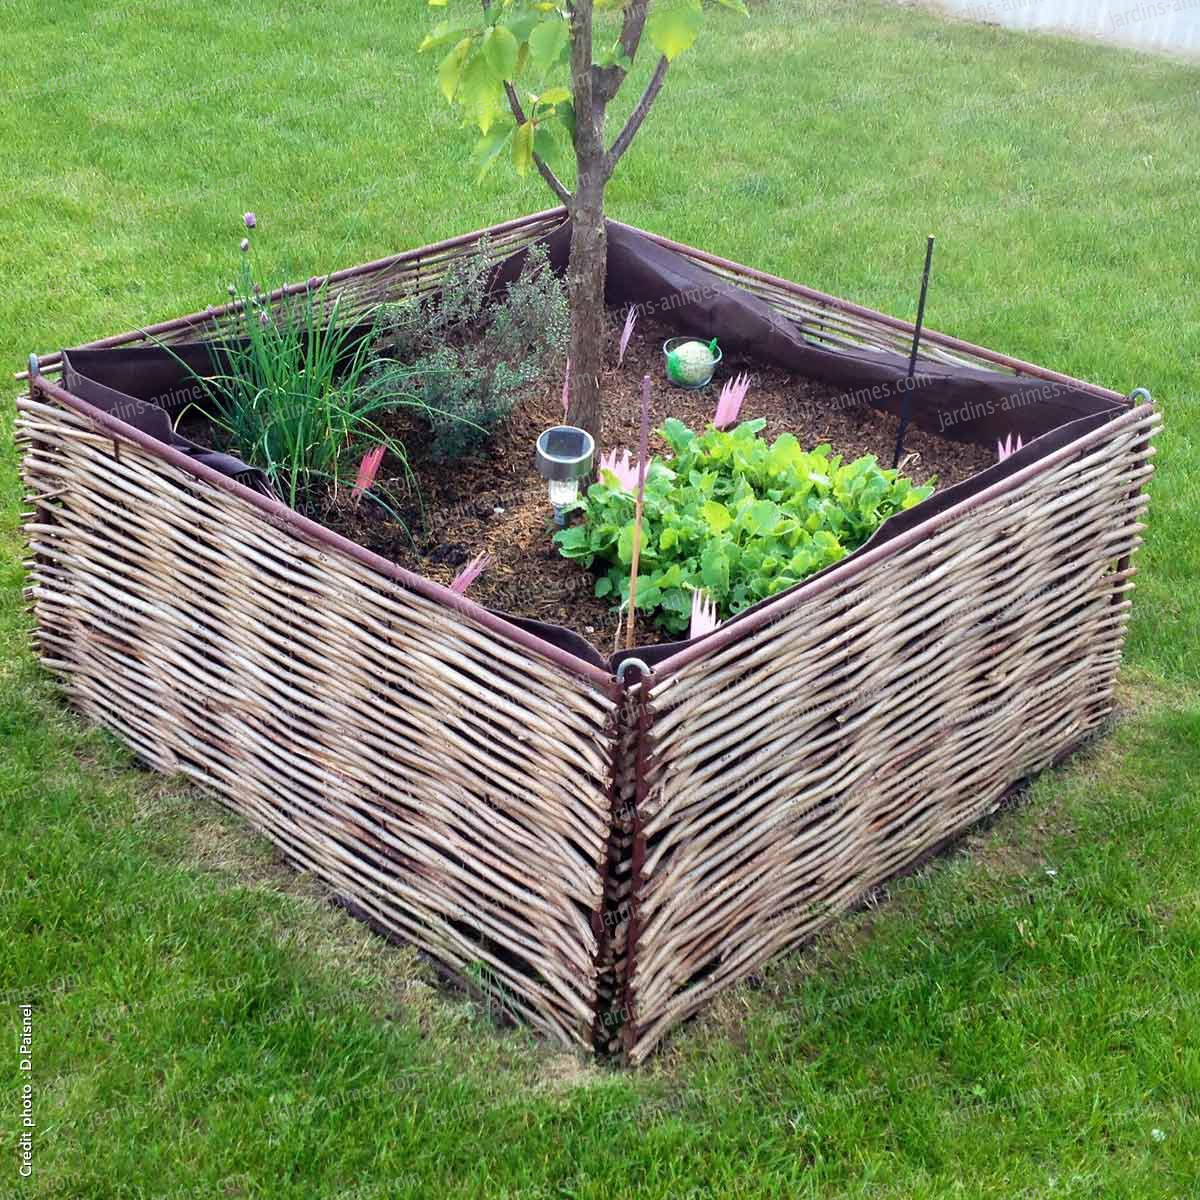 Kit carré potager 90x90x45cm - 4 bordures + un sac + 4 fixations U ...